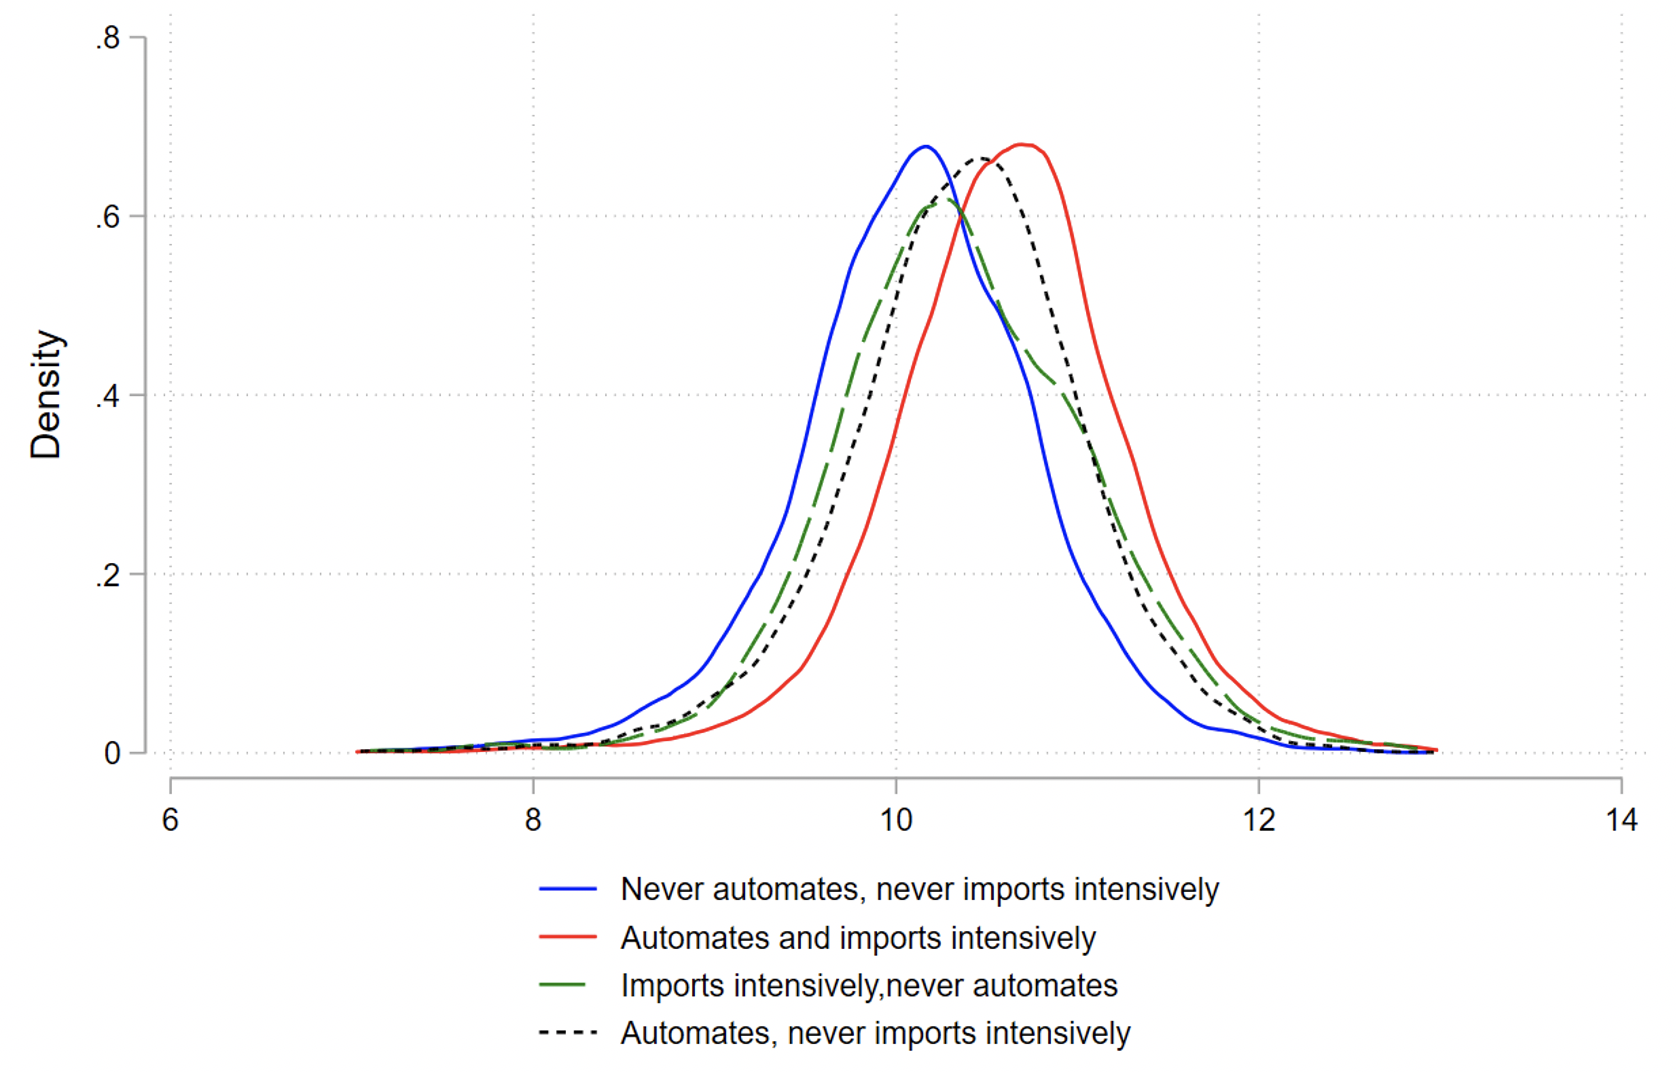 Why automation in Spanish firms did not cause reshoring 2